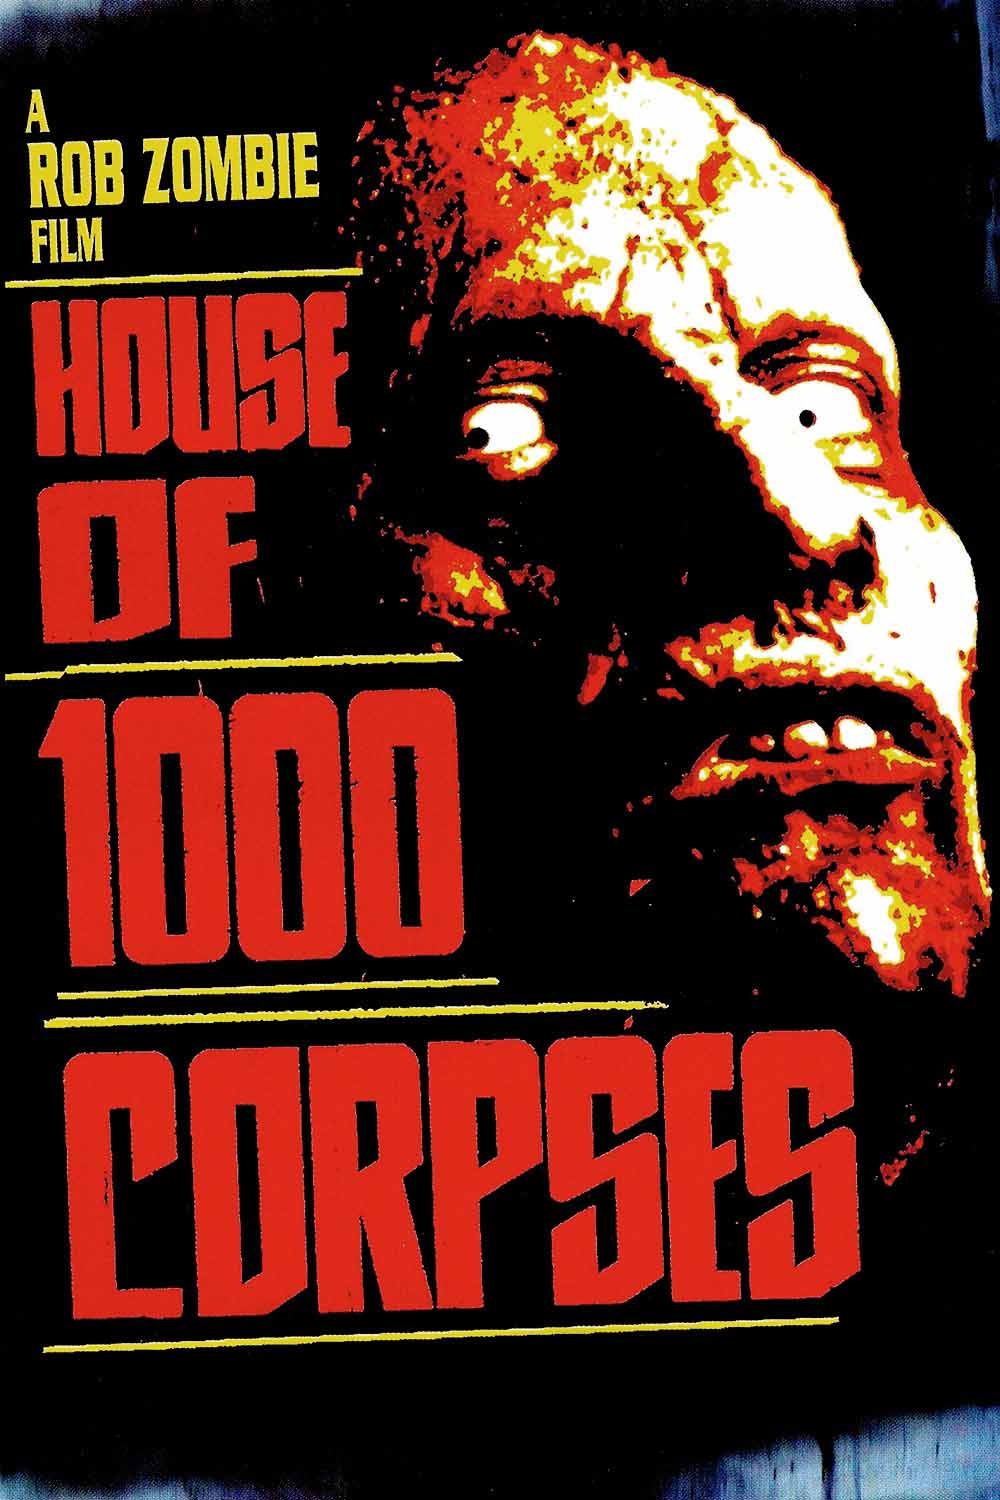 ea5a5-house-of-1000-corpses-poster.jpg